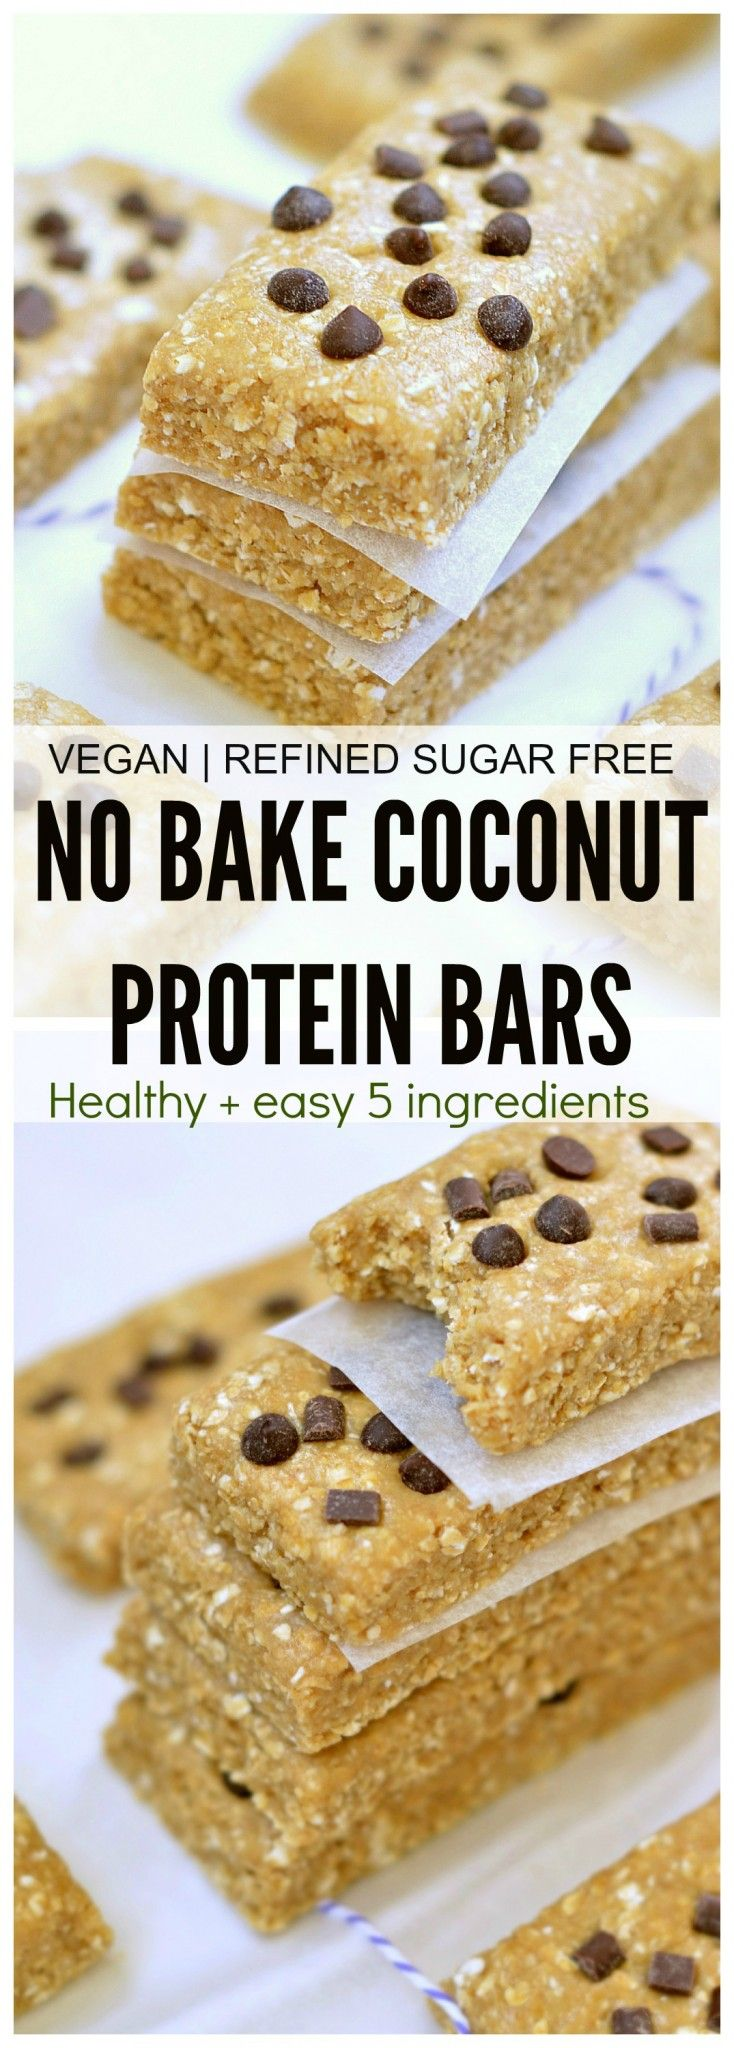 Healthy 5 ingredient no bake coconut protein bars. Less than 10 minutes, No refined sugar, no egg, no dairy, no oil, no flour.